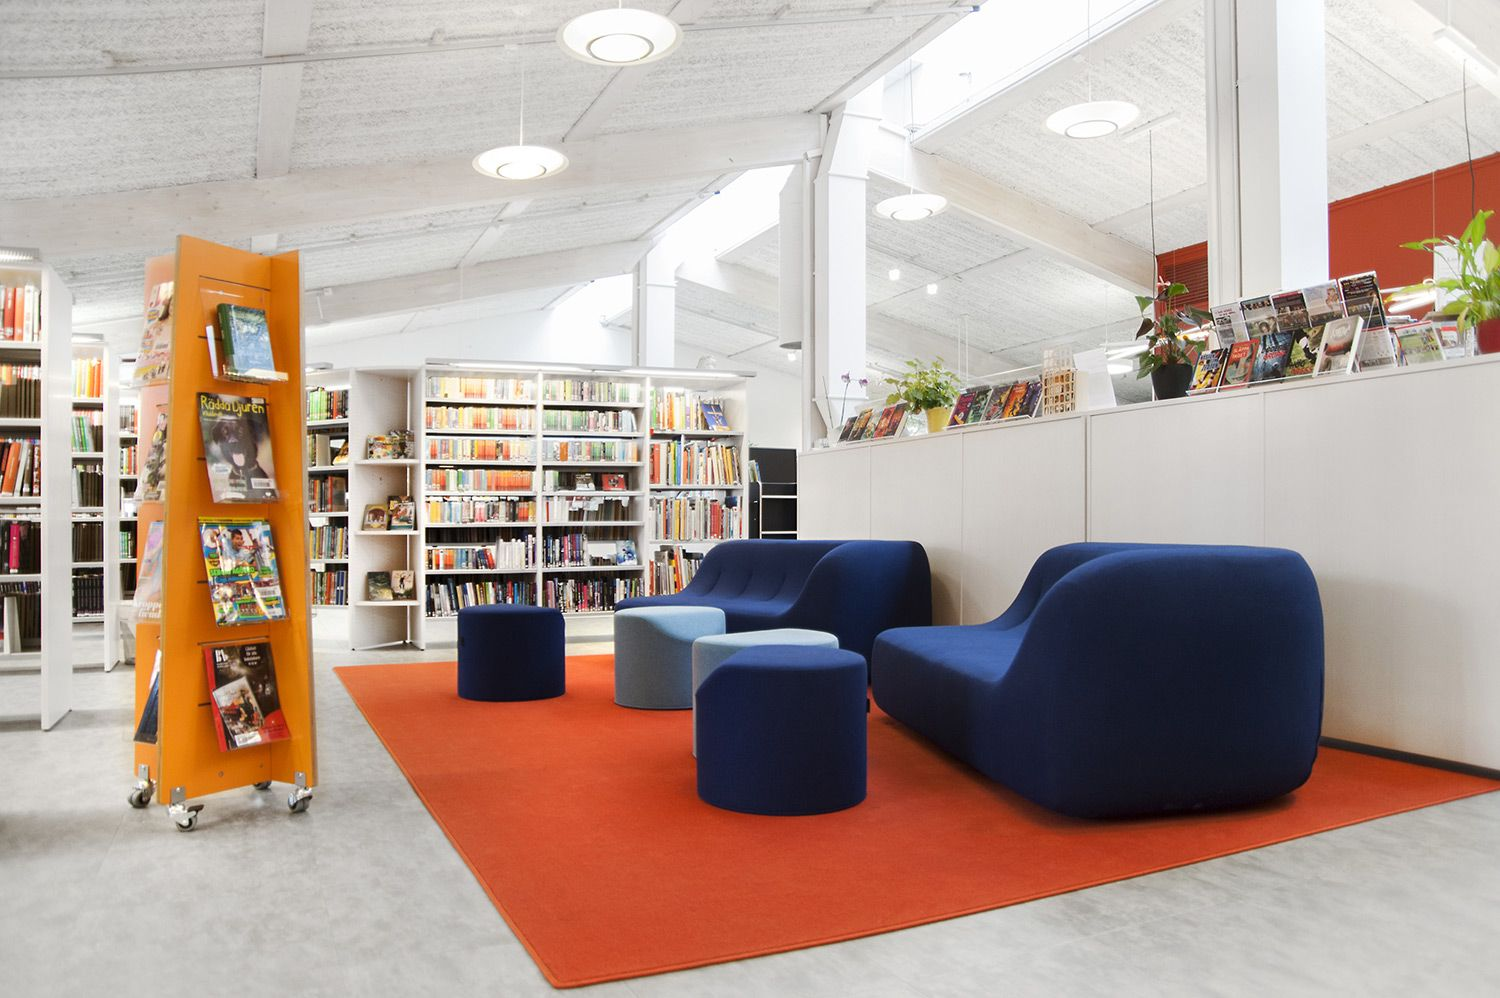 quattro display tower - bci libraries | modern library